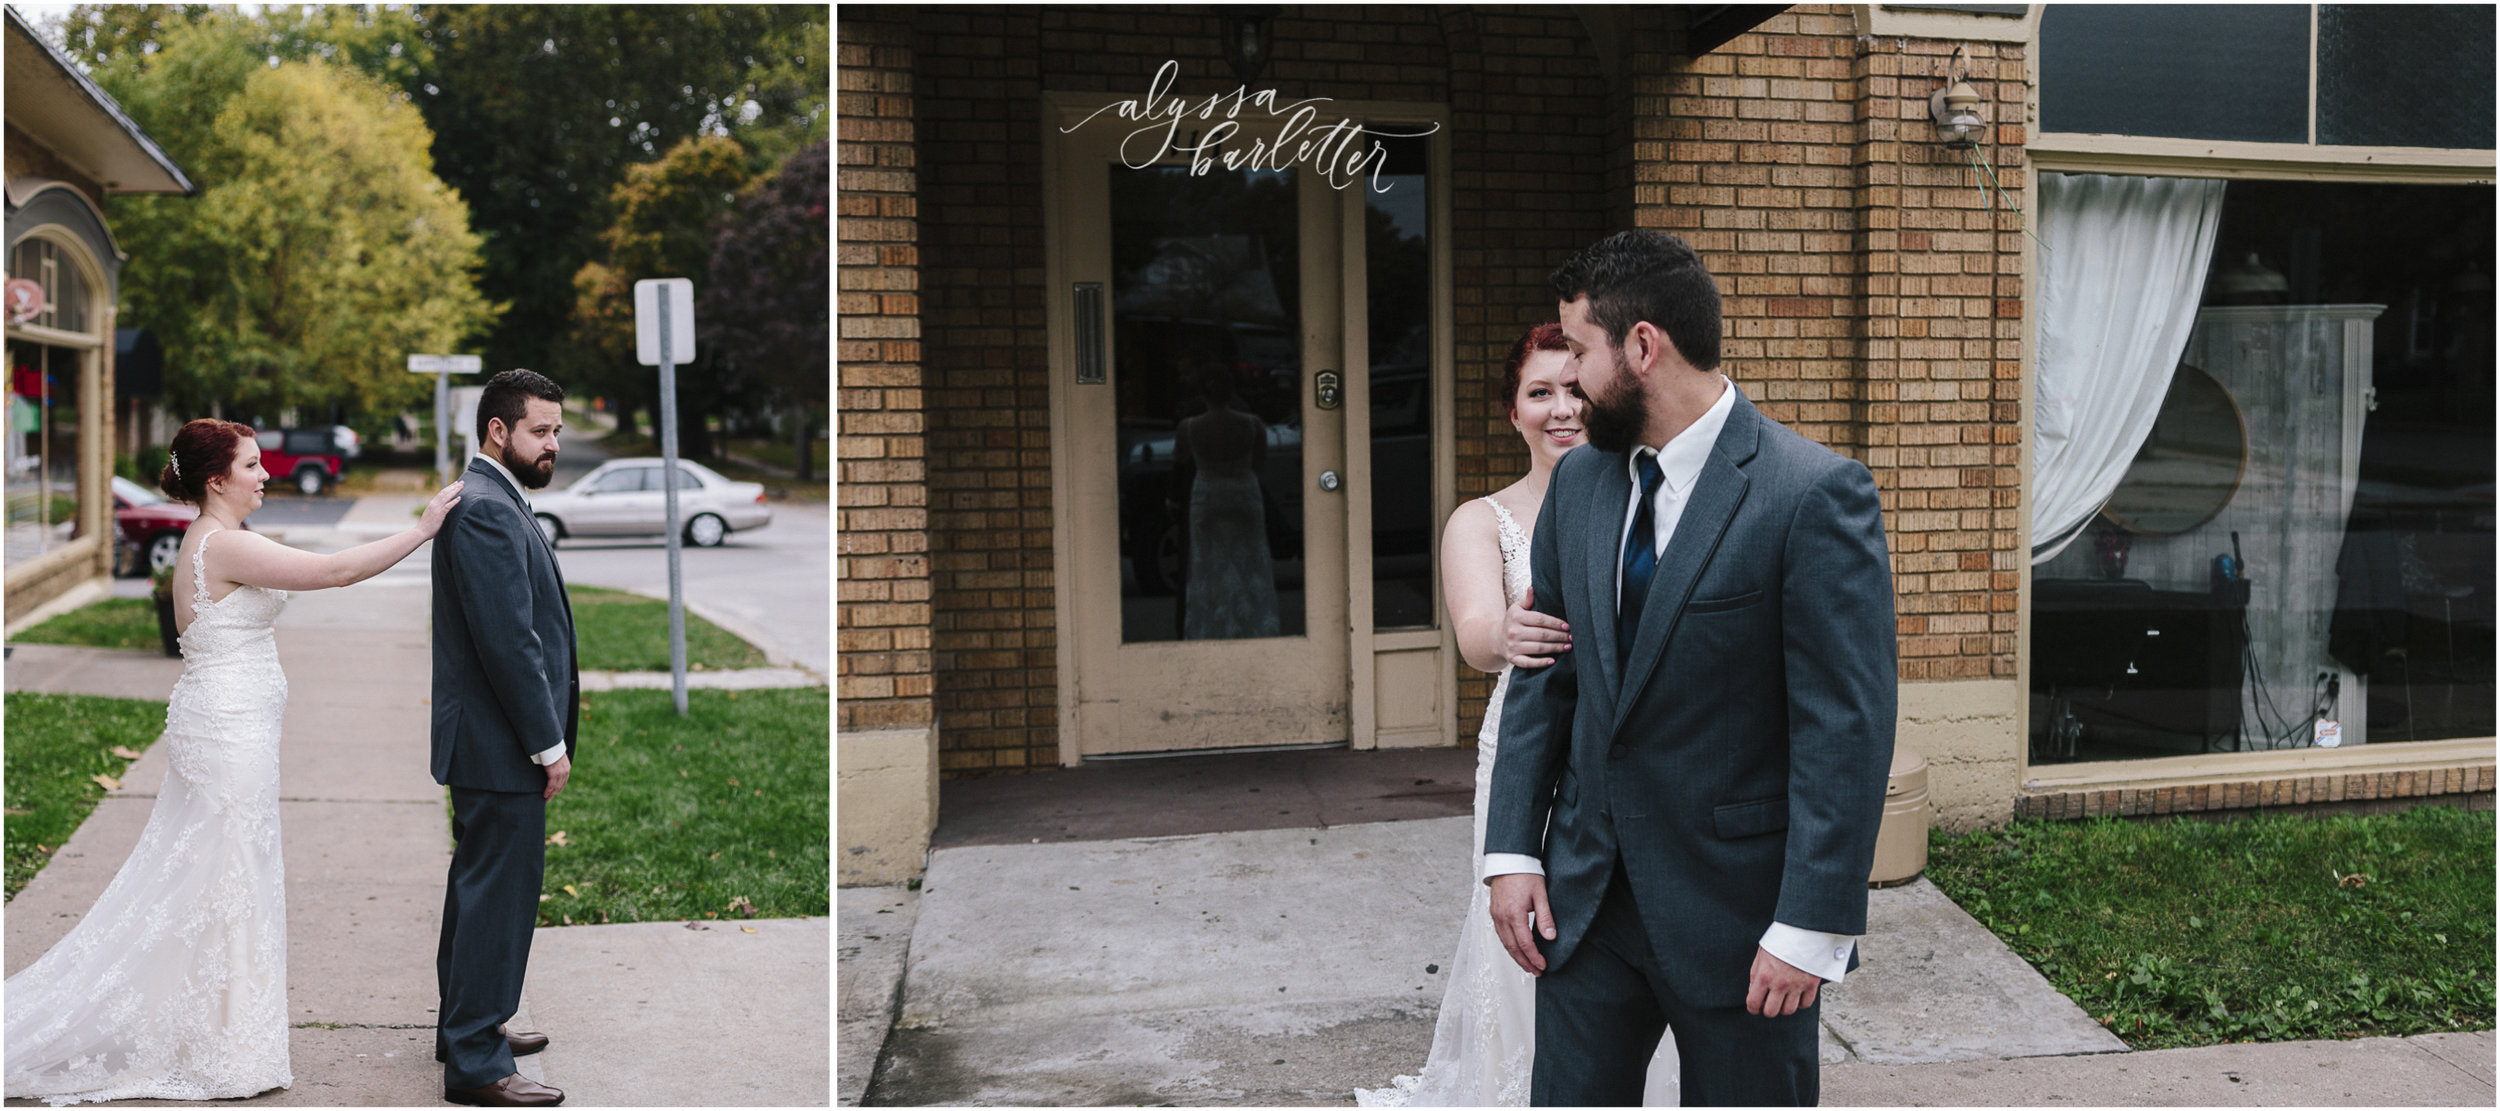 alyssa barletter photography wedding liberty missouri hipster quirky alex and shawn-1-9.jpg